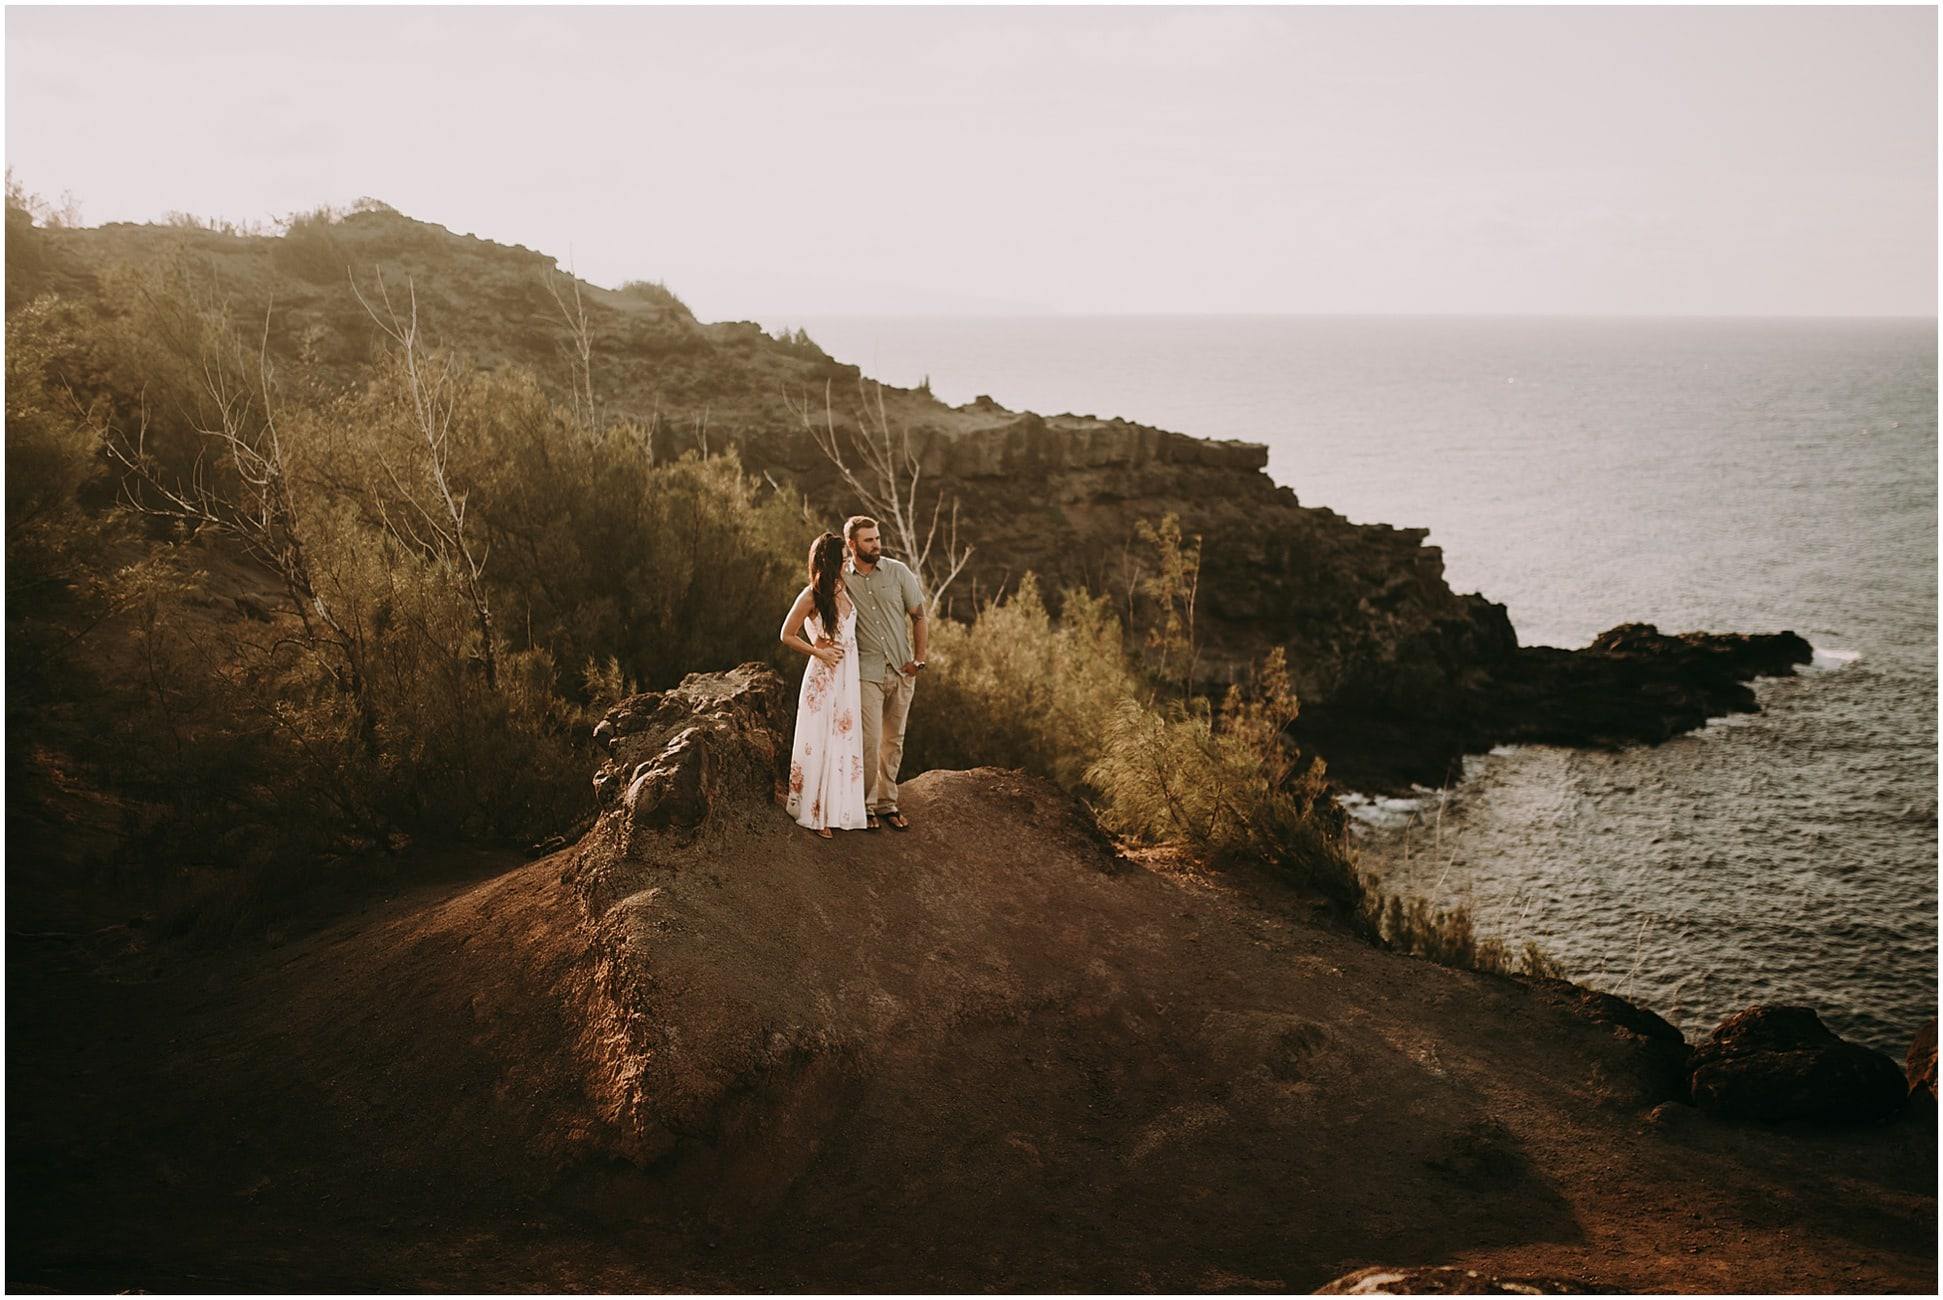 Maui engagement photographer10